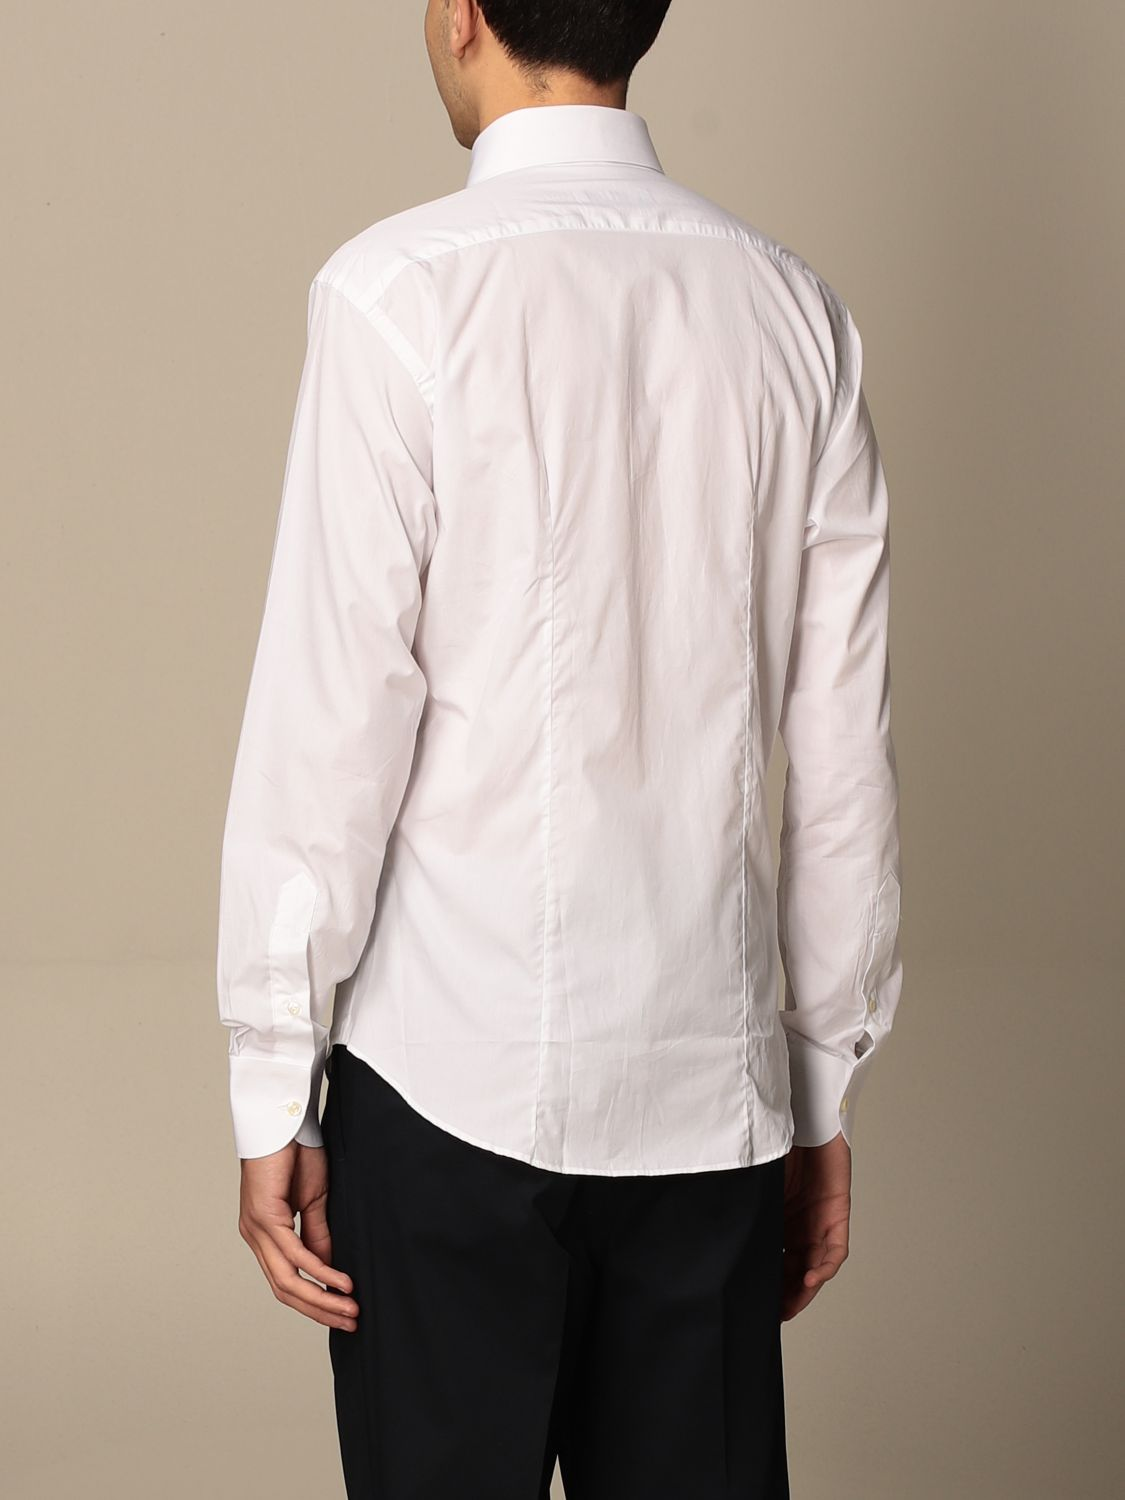 Shirt Brian Dales Camicie: Brian Dales Tailored Shirt Shirts with Italian collar in cotton white 2